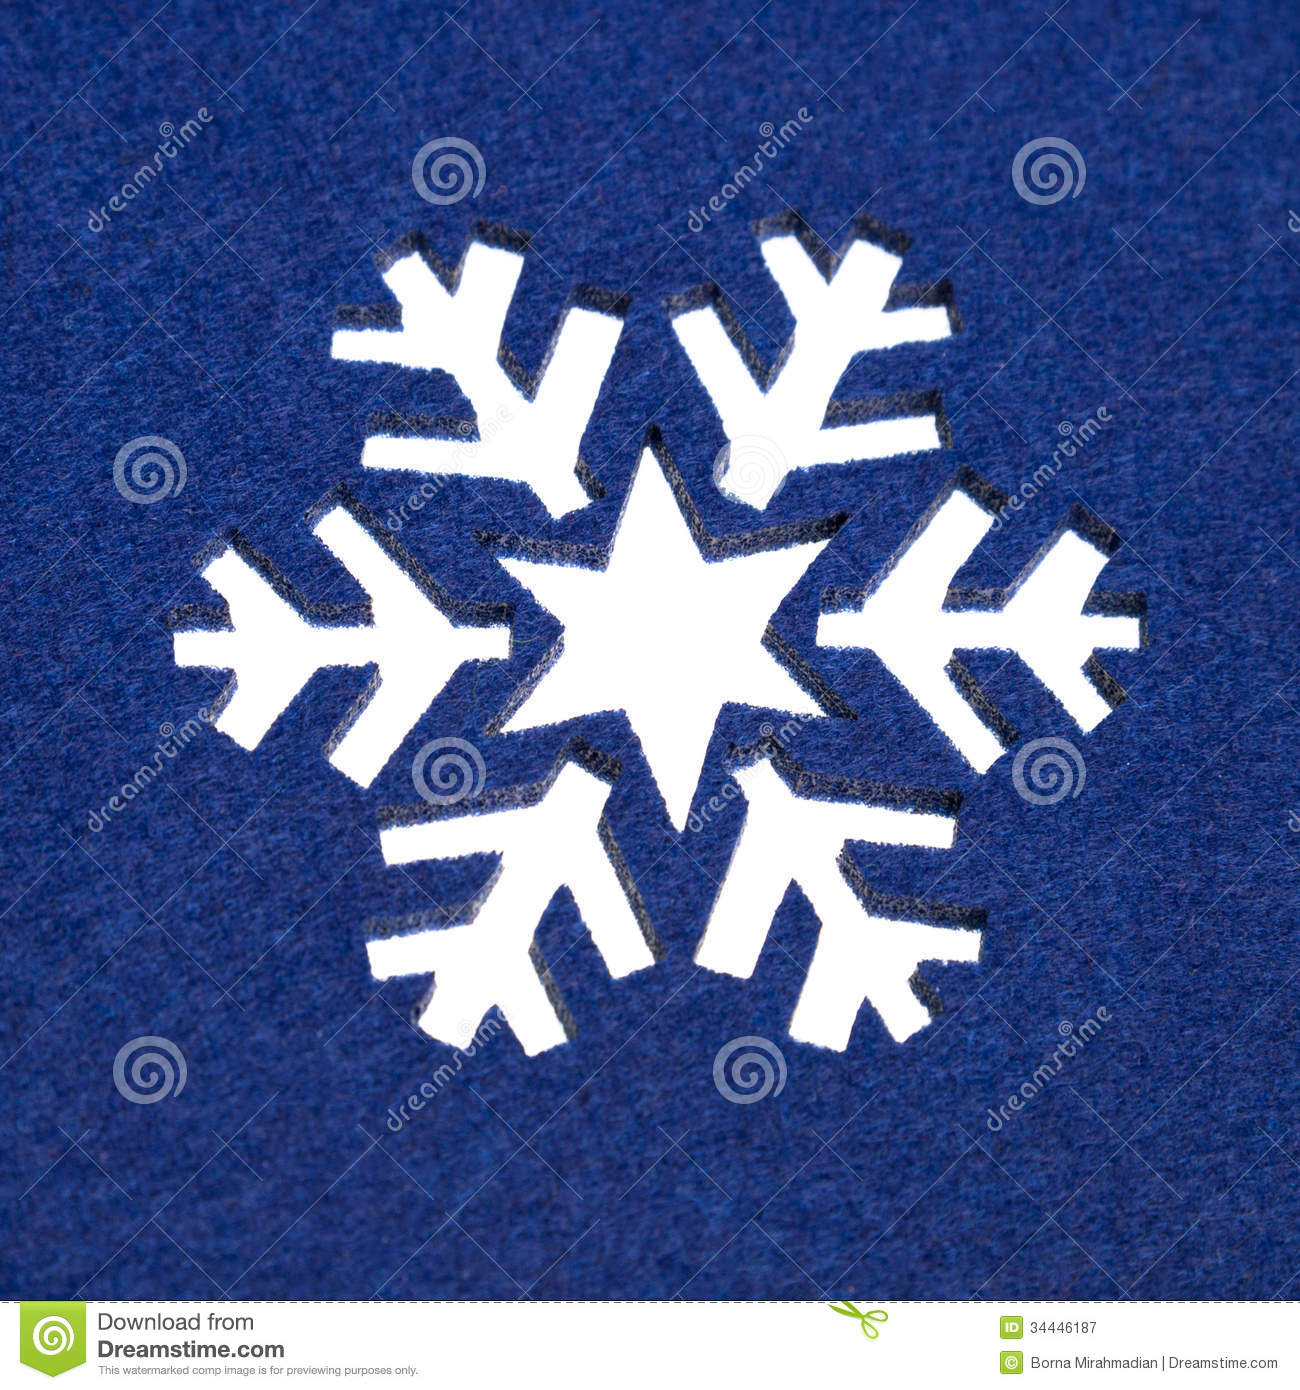 Snowflake Pattern Cut Out From Fluffy Blue Felt Royalty Free Stock ...